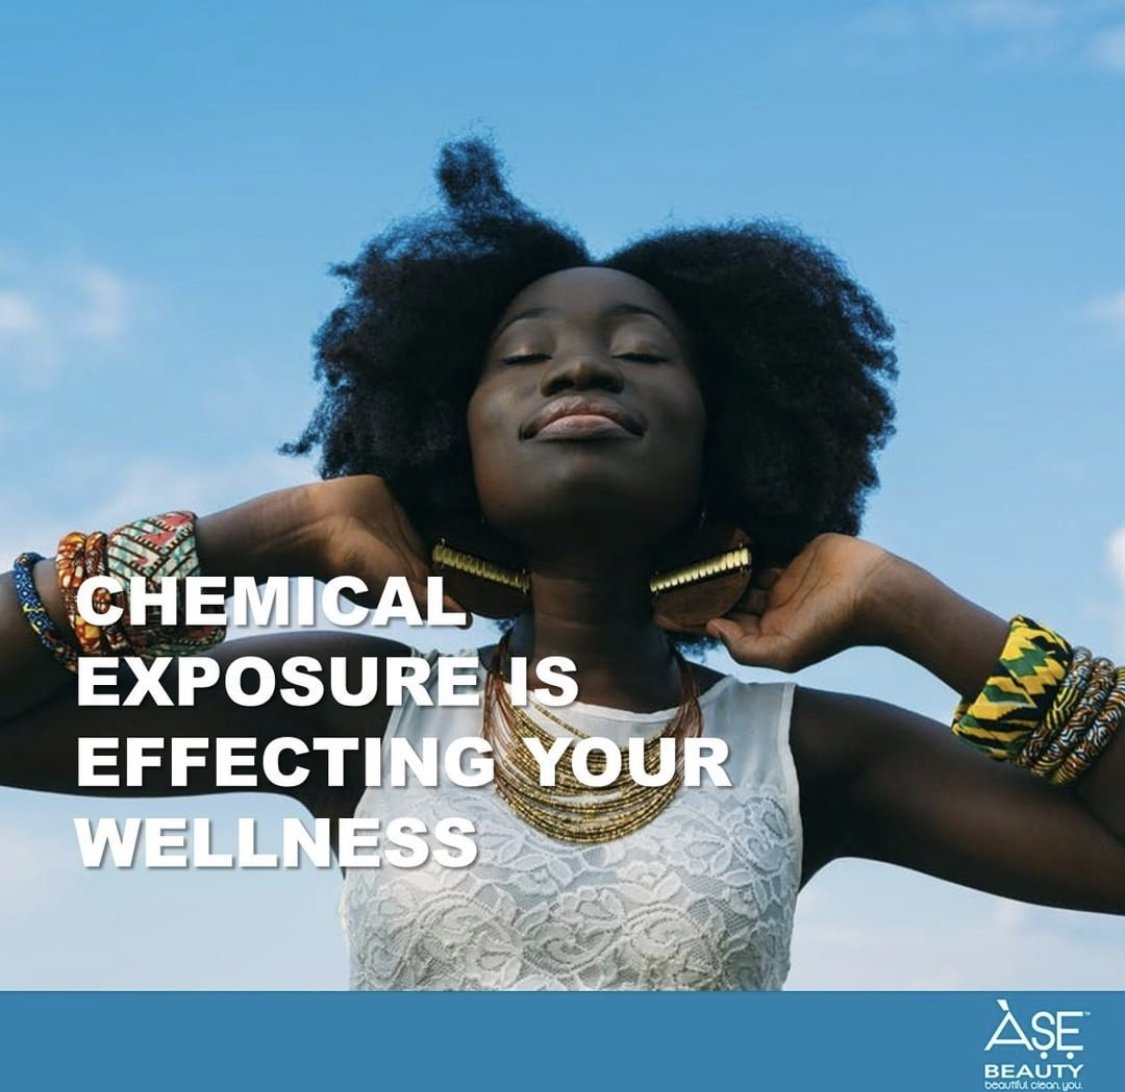 3 Ways Chemical Exposure is Impacting Your Wellness